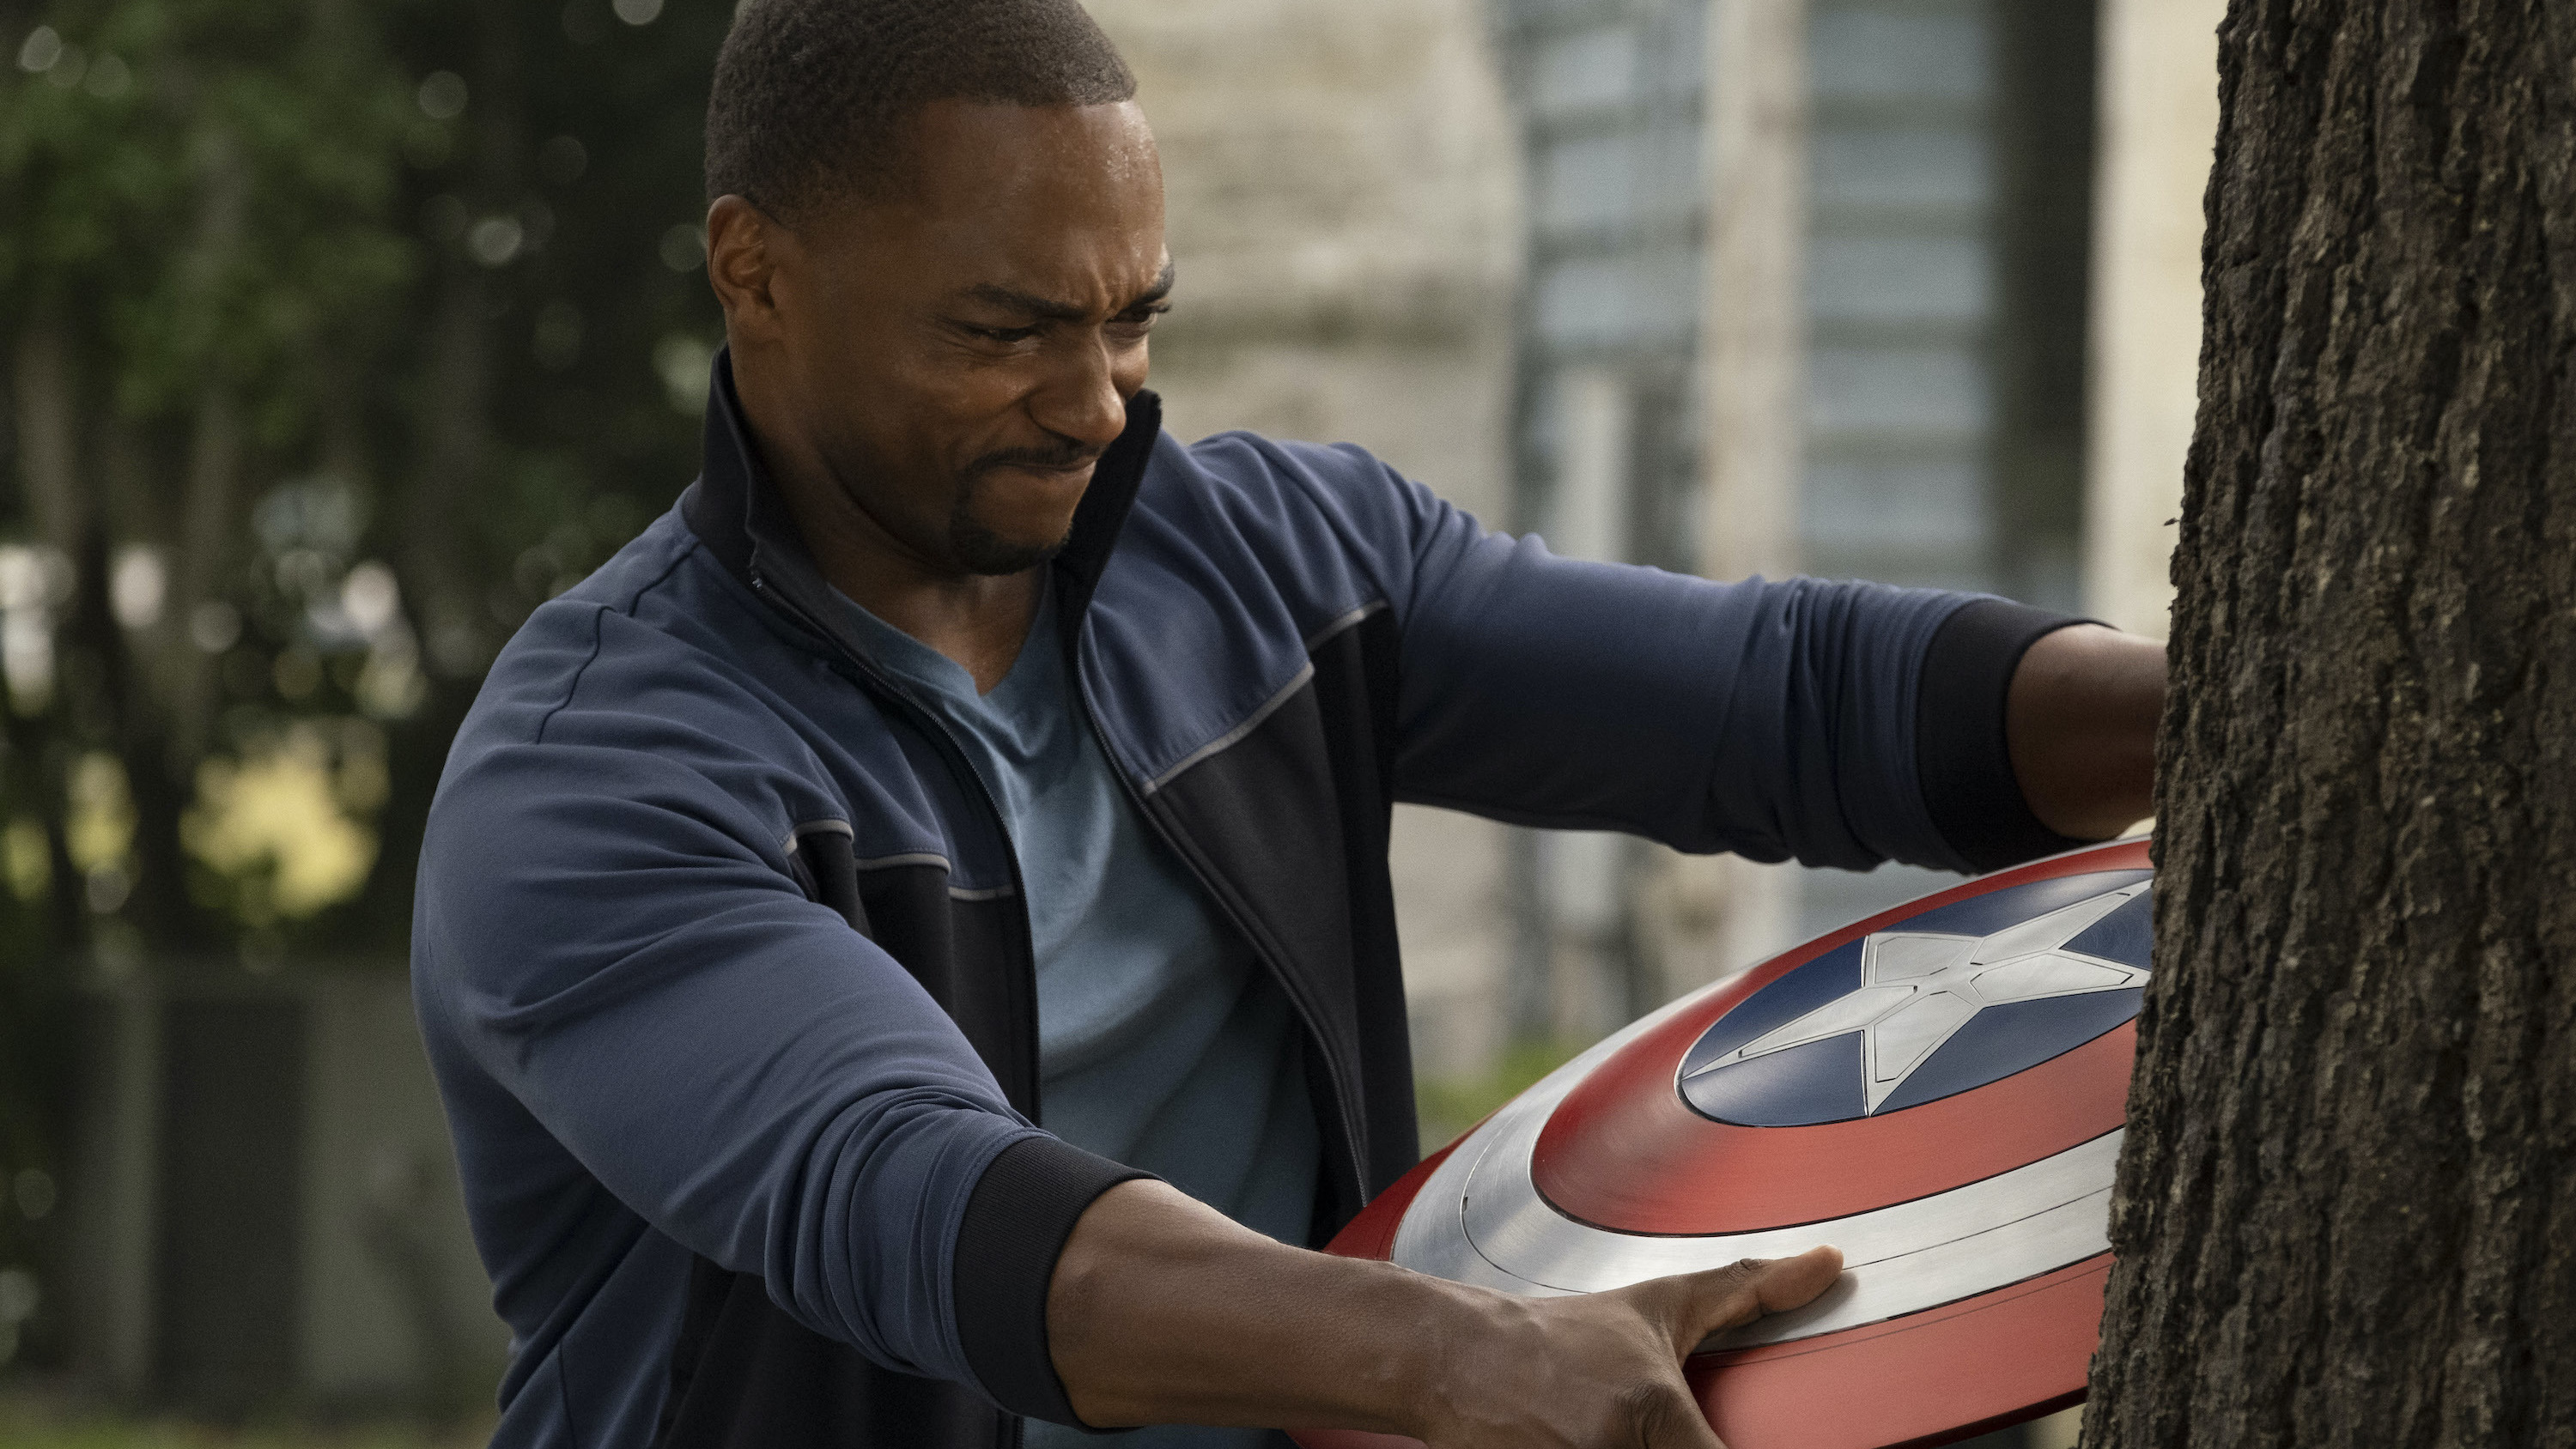 Falcon/Sam Wilson (Anthony Mackie) in Marvel Studios' THE FALCON AND THE WINTER SOLDIER exclusively on Disney+. Photo by Chuck Zlotnick. ©Marvel Studios 2021. All Rights Reserved.